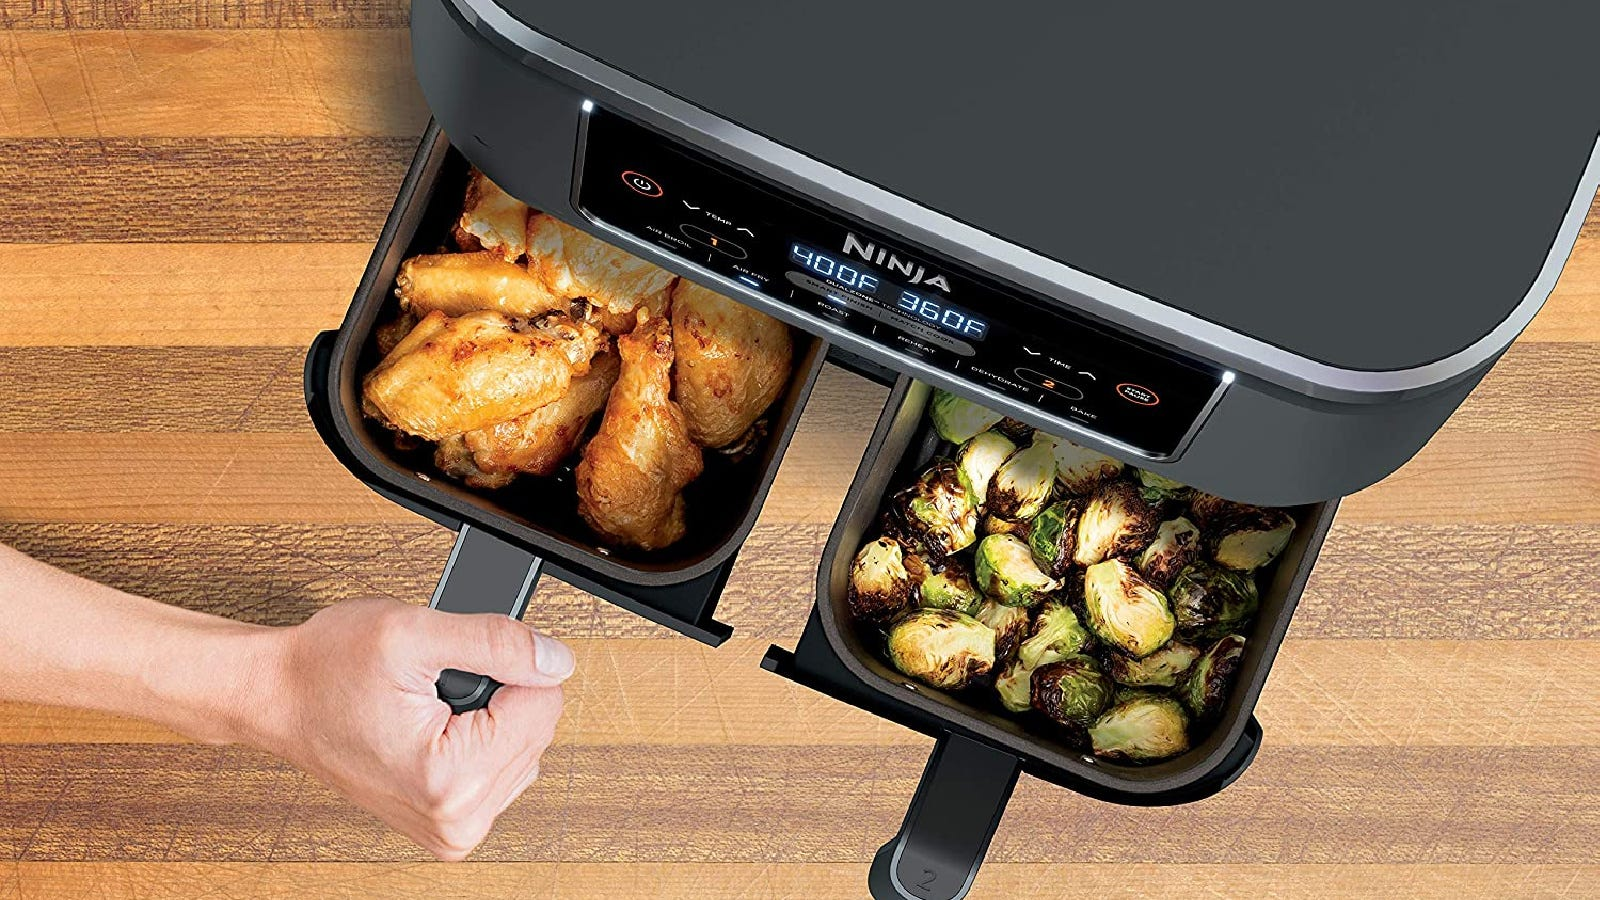 Someone opening a compartment to the Ninja Foodi two-basket air fryer filled with chicken wings on one side and perfectly crispy brussels sprouts on the other side.